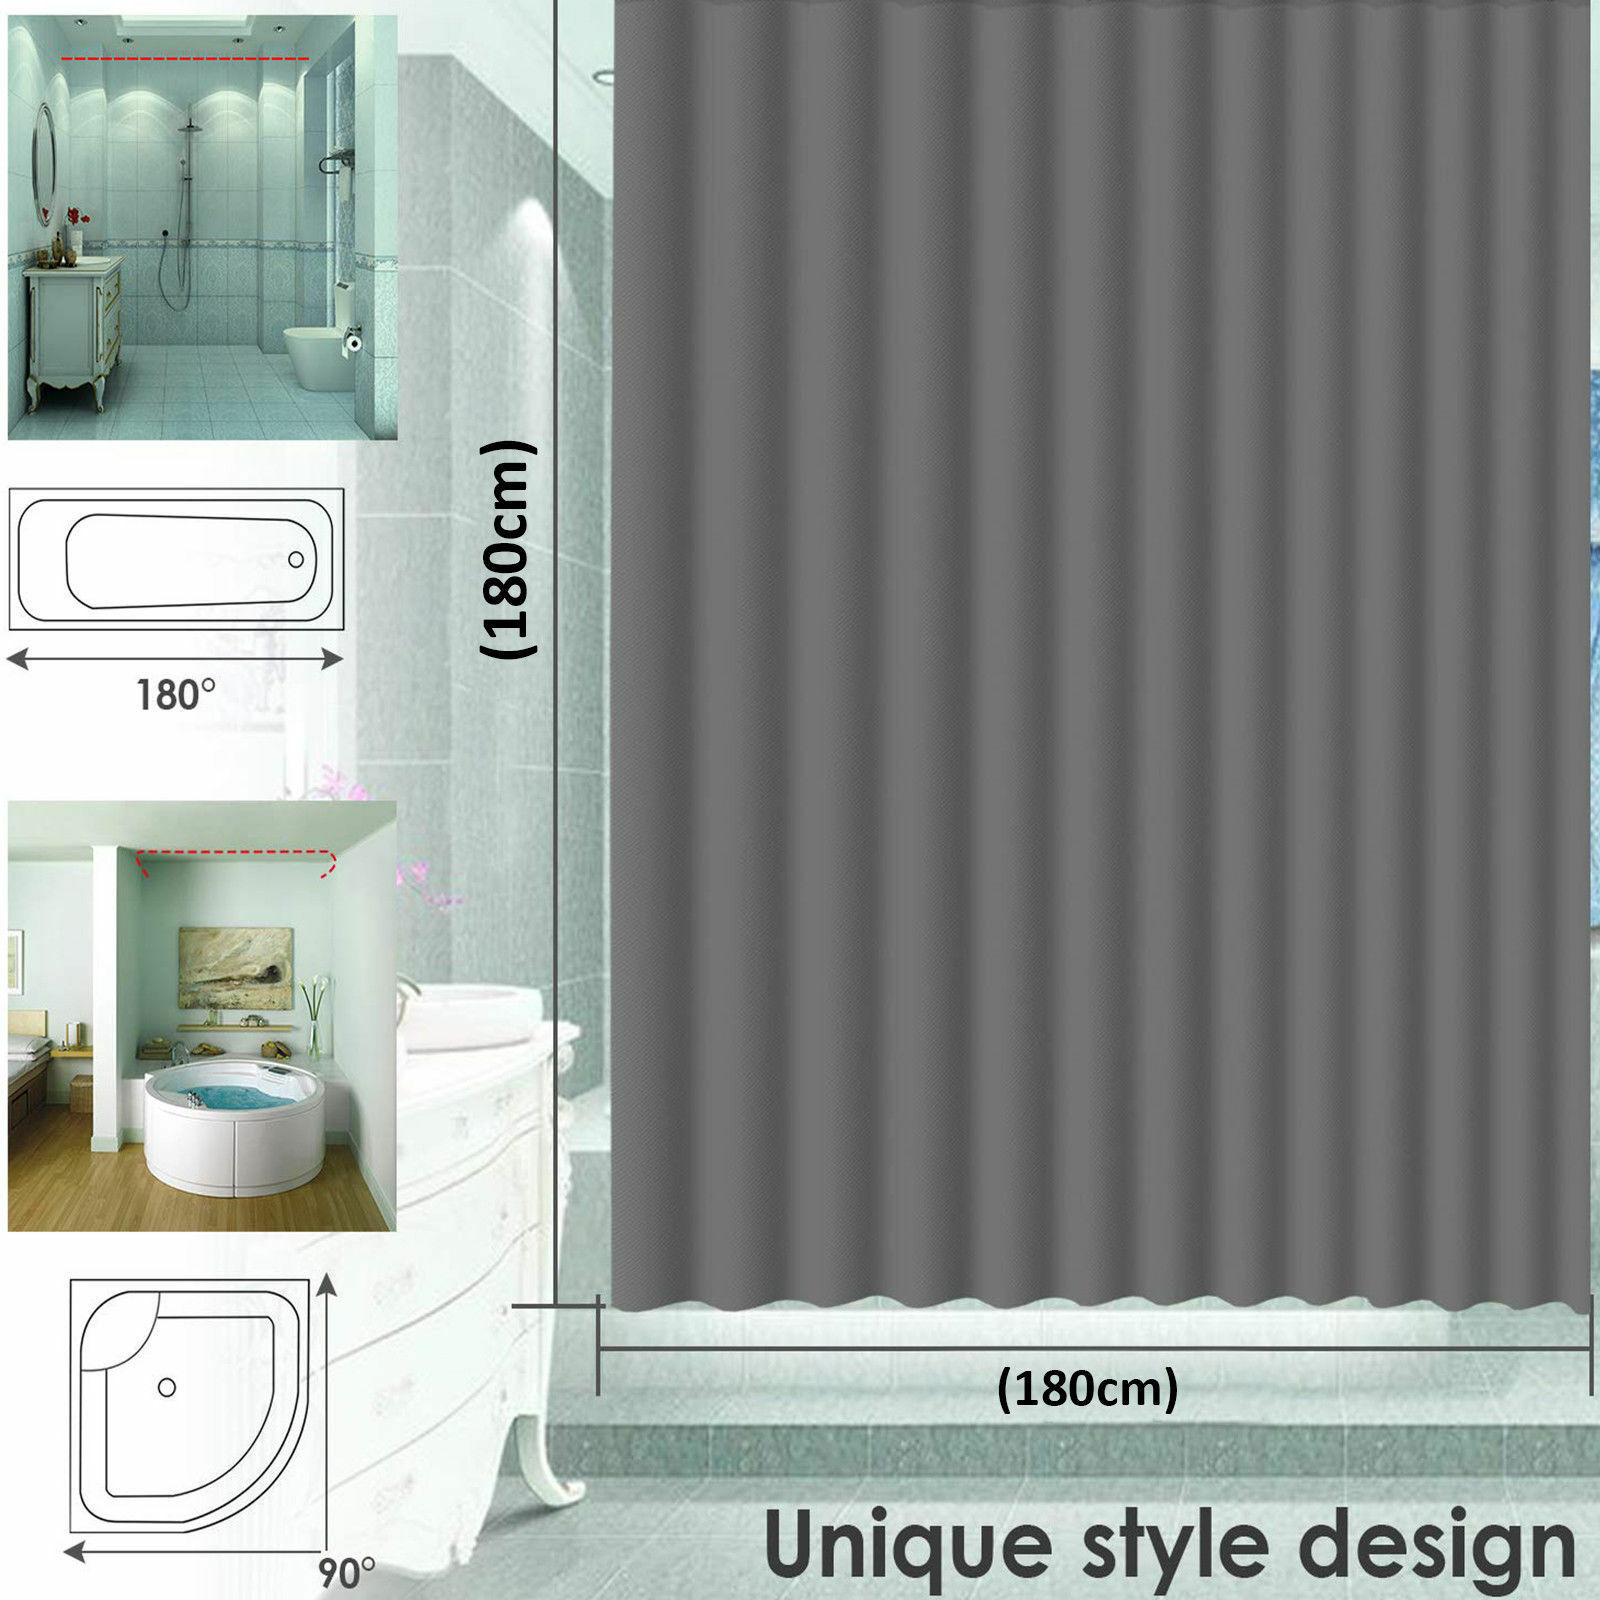 Details About Waterproof Bathroom Shower Curtain Extra Long 12 Hooks Ring Set 180x180cm Wl 176